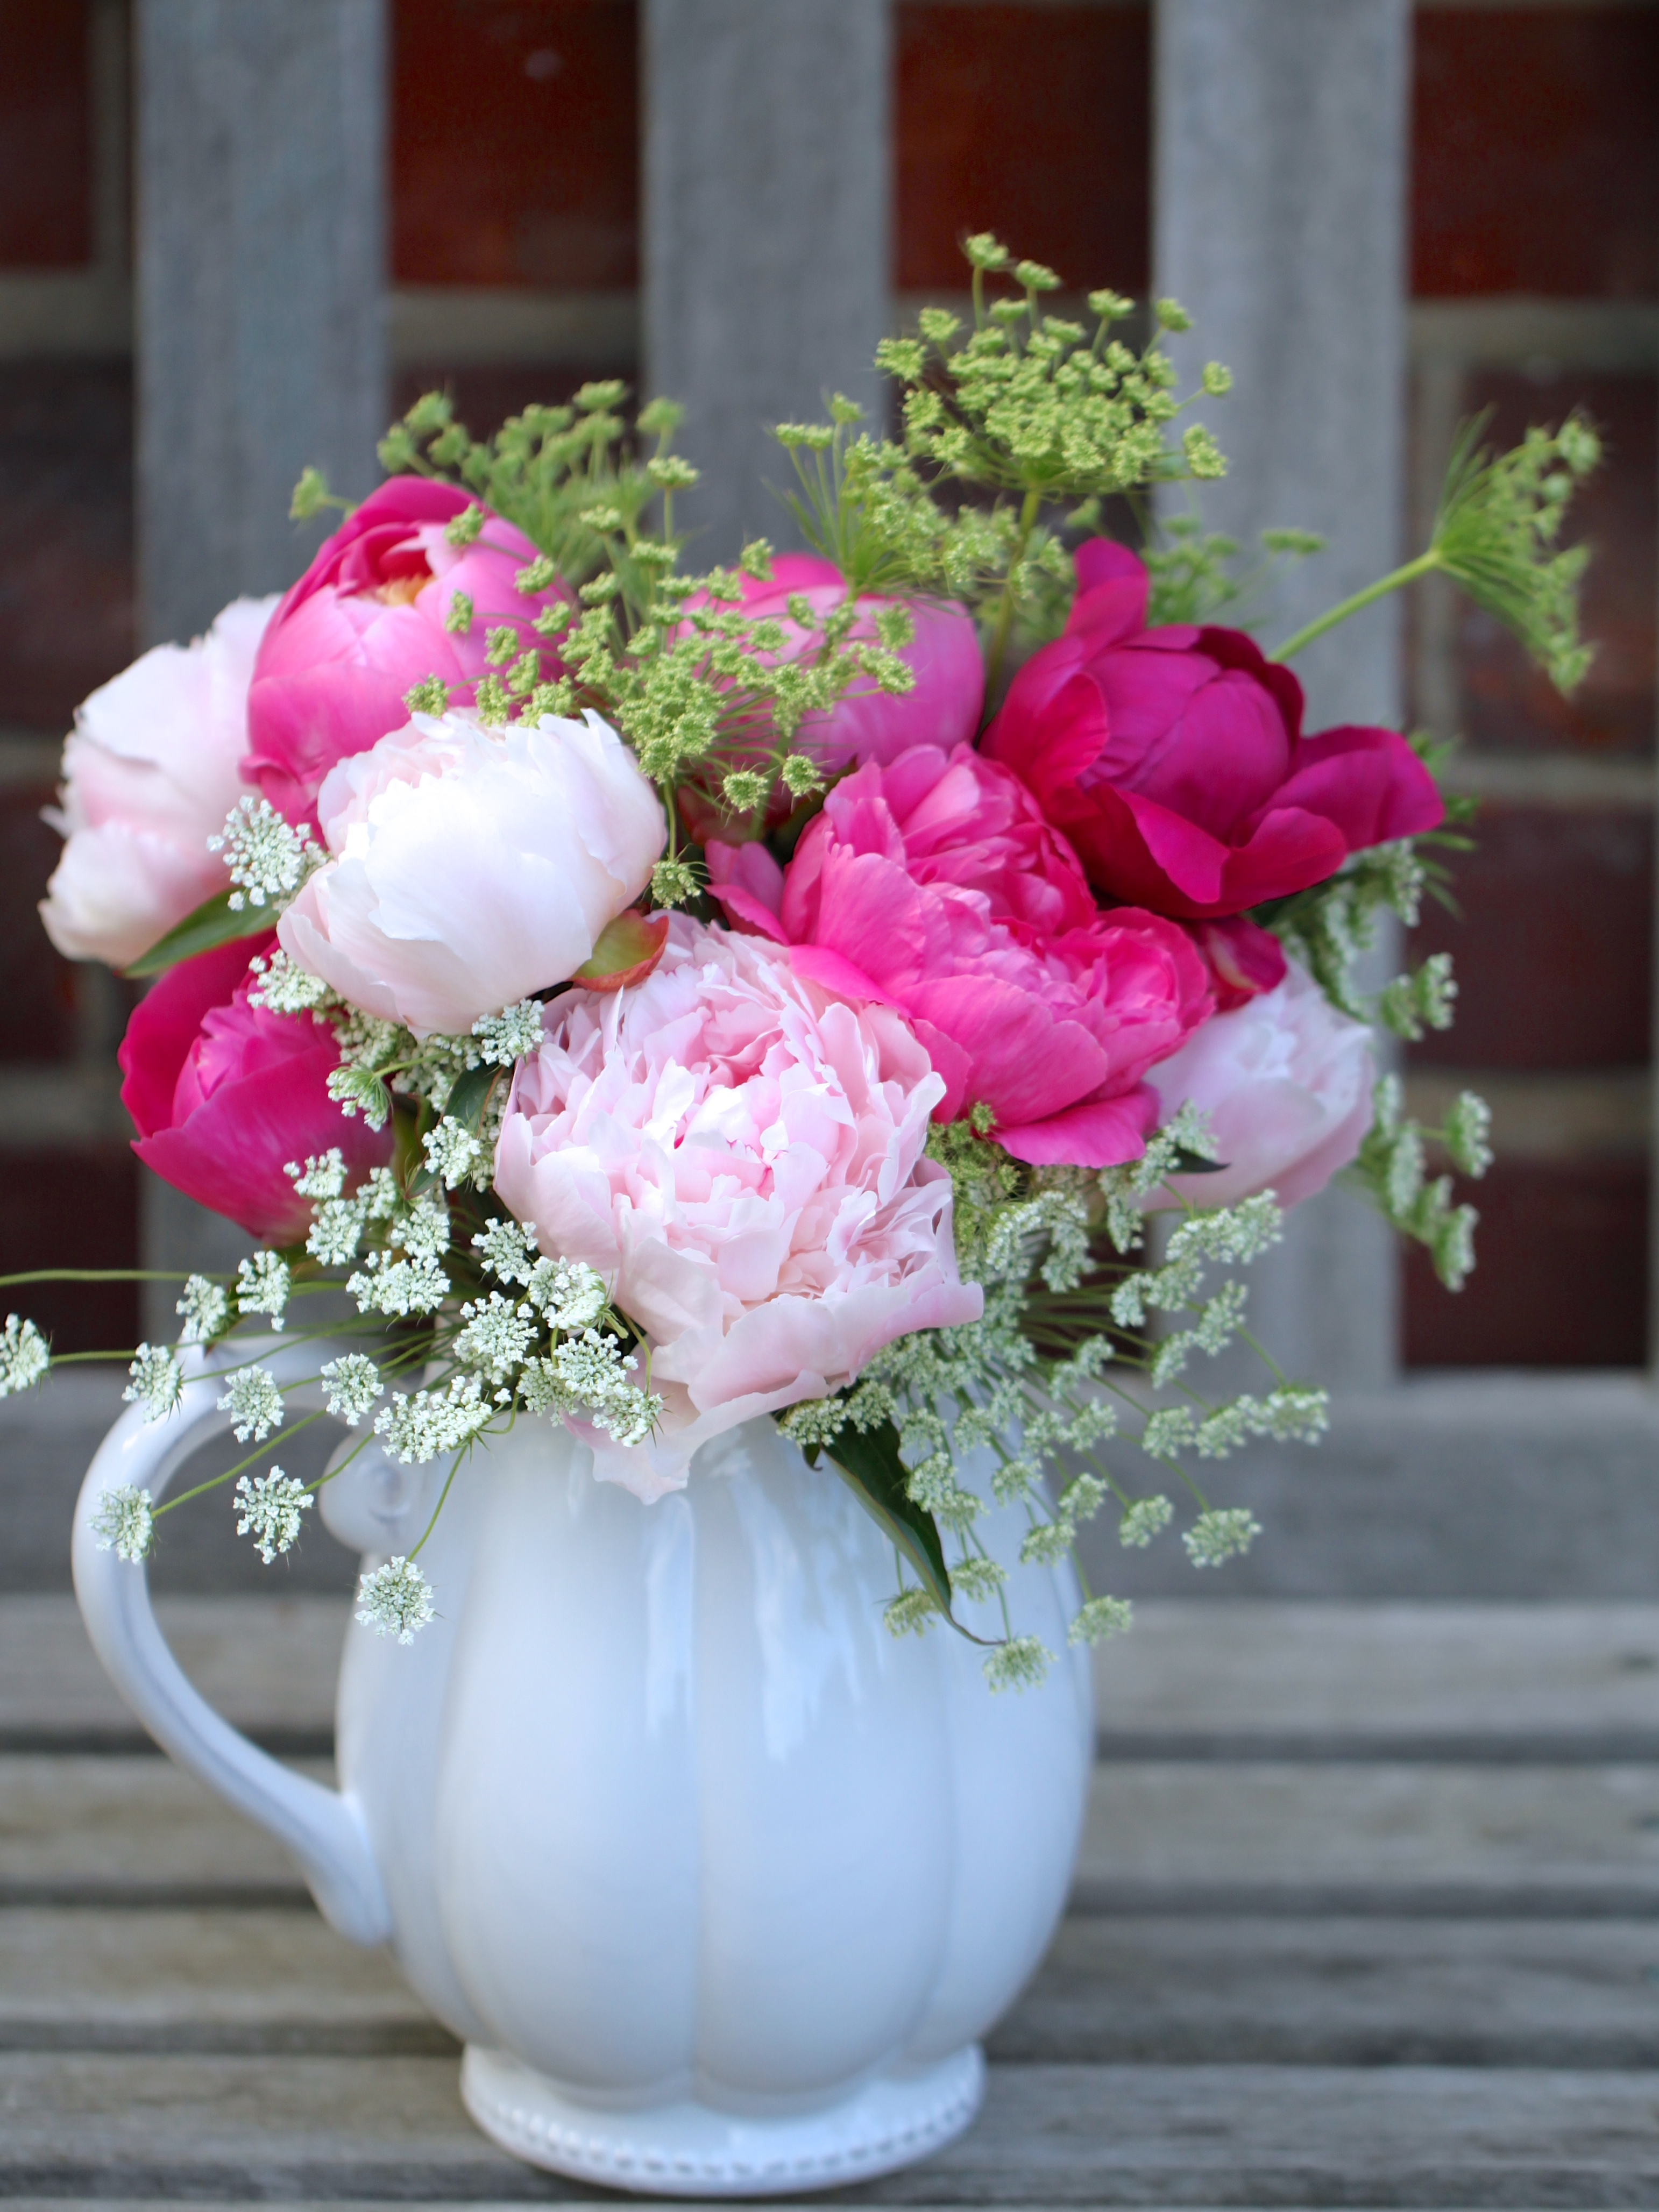 In a vase on monday british flowers week peonies posies peonies british flower week reviewsmspy